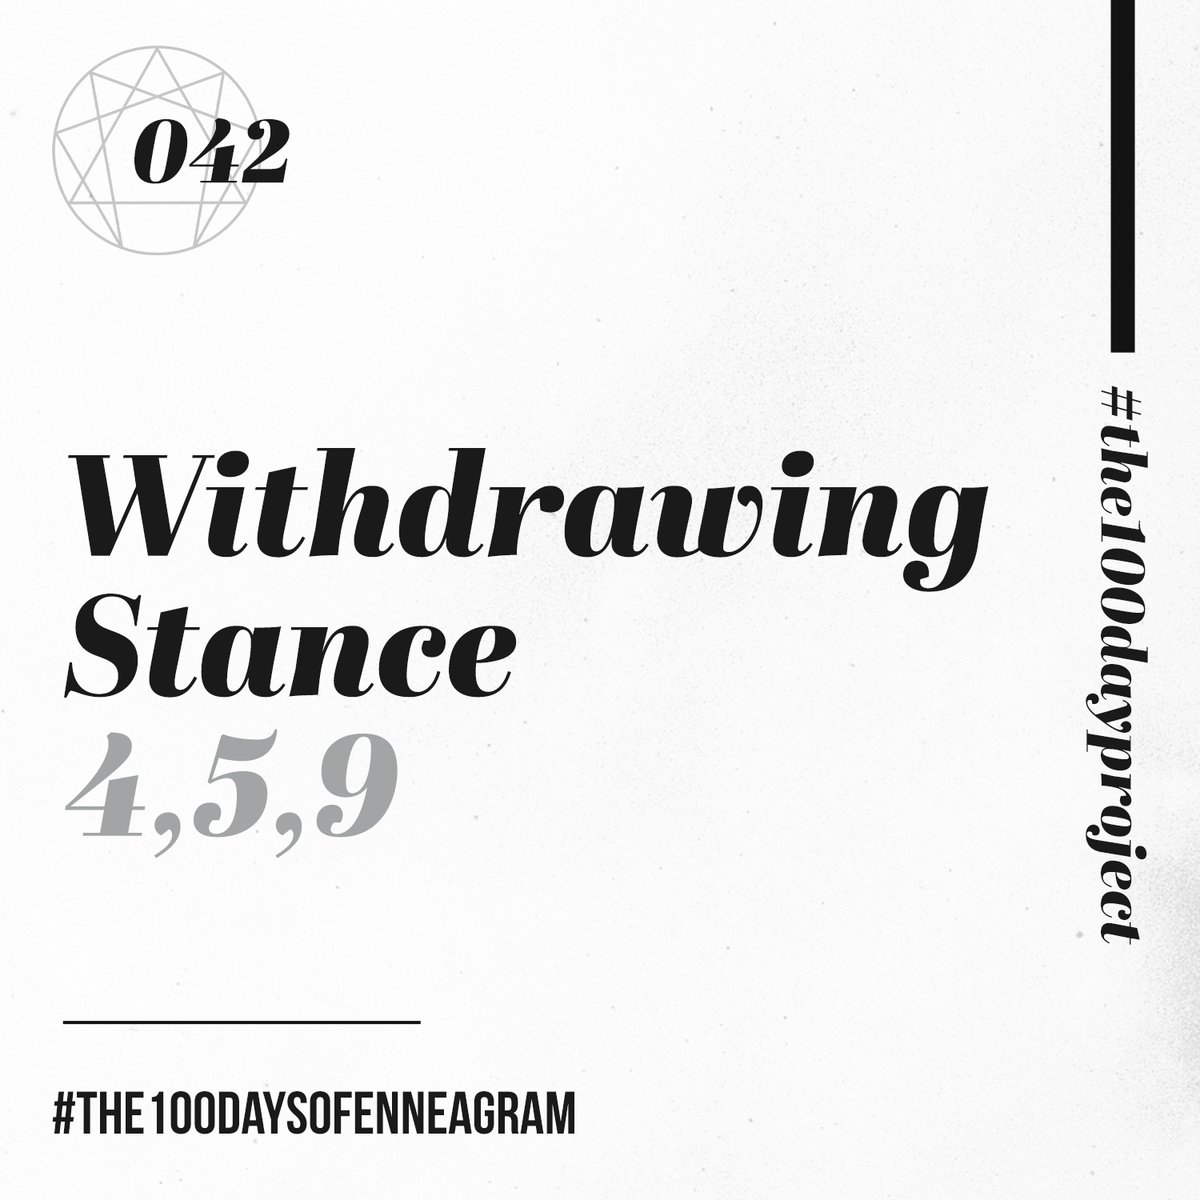 042/100 | Withdrawing Stance (4,5,9) Listen at https://t.co/MBo795Vt8V  Still a day behind. Working on it.  #the100dayproject #the100daysofEnneagram #enneagram #stances #relationships https://t.co/WMkTP0Hkgi